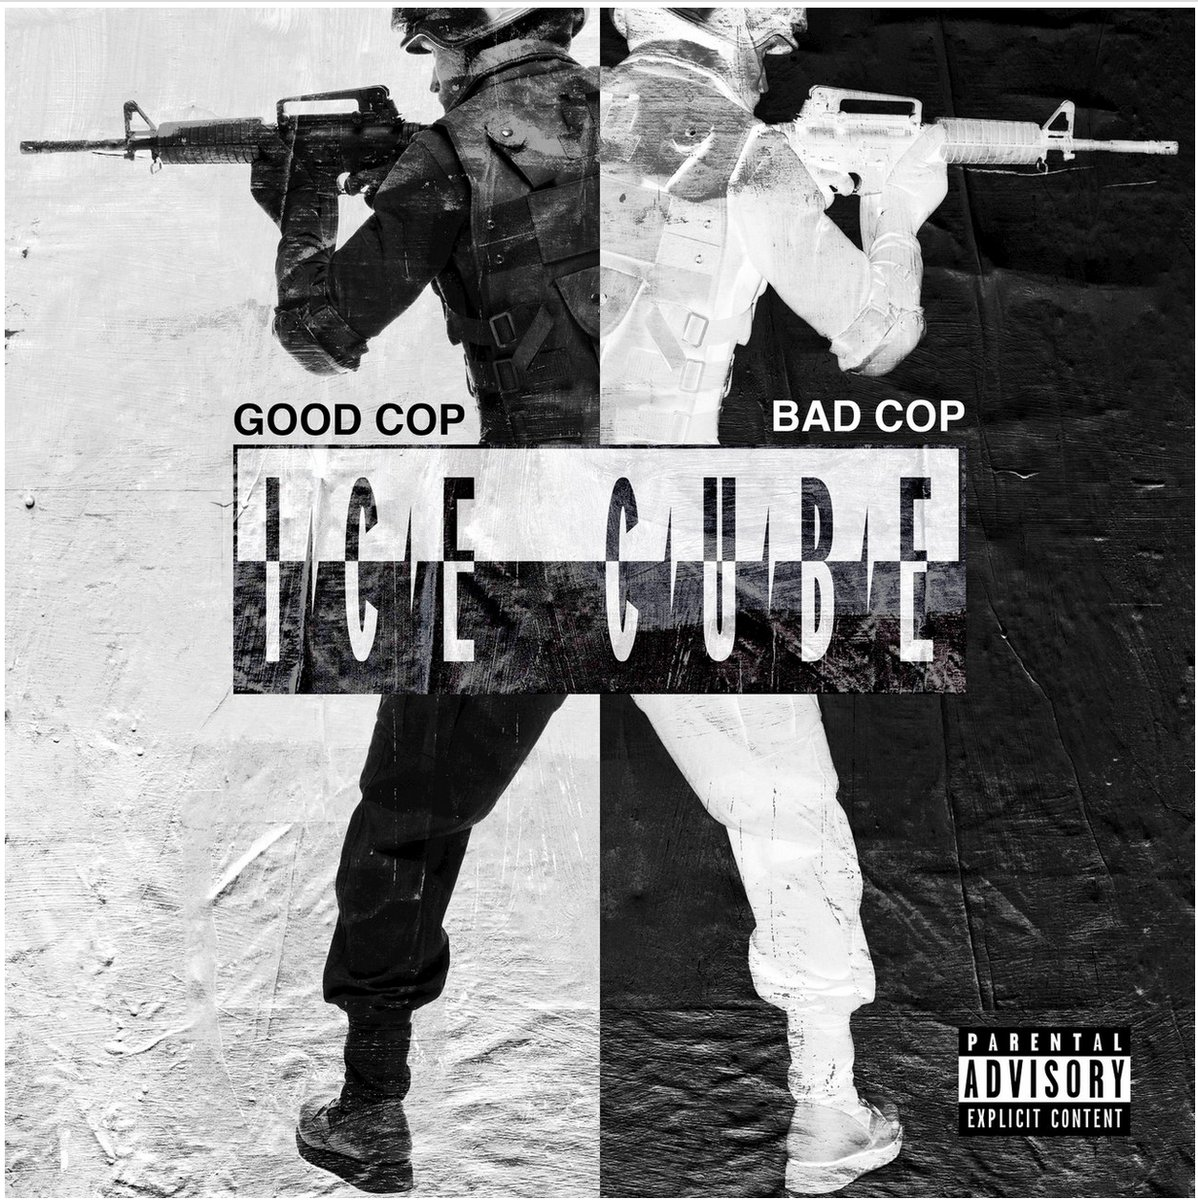 Ice Cube Cover Photo Amazing ice cube – good cop bad cop | adramatic - hip-hop / rap us